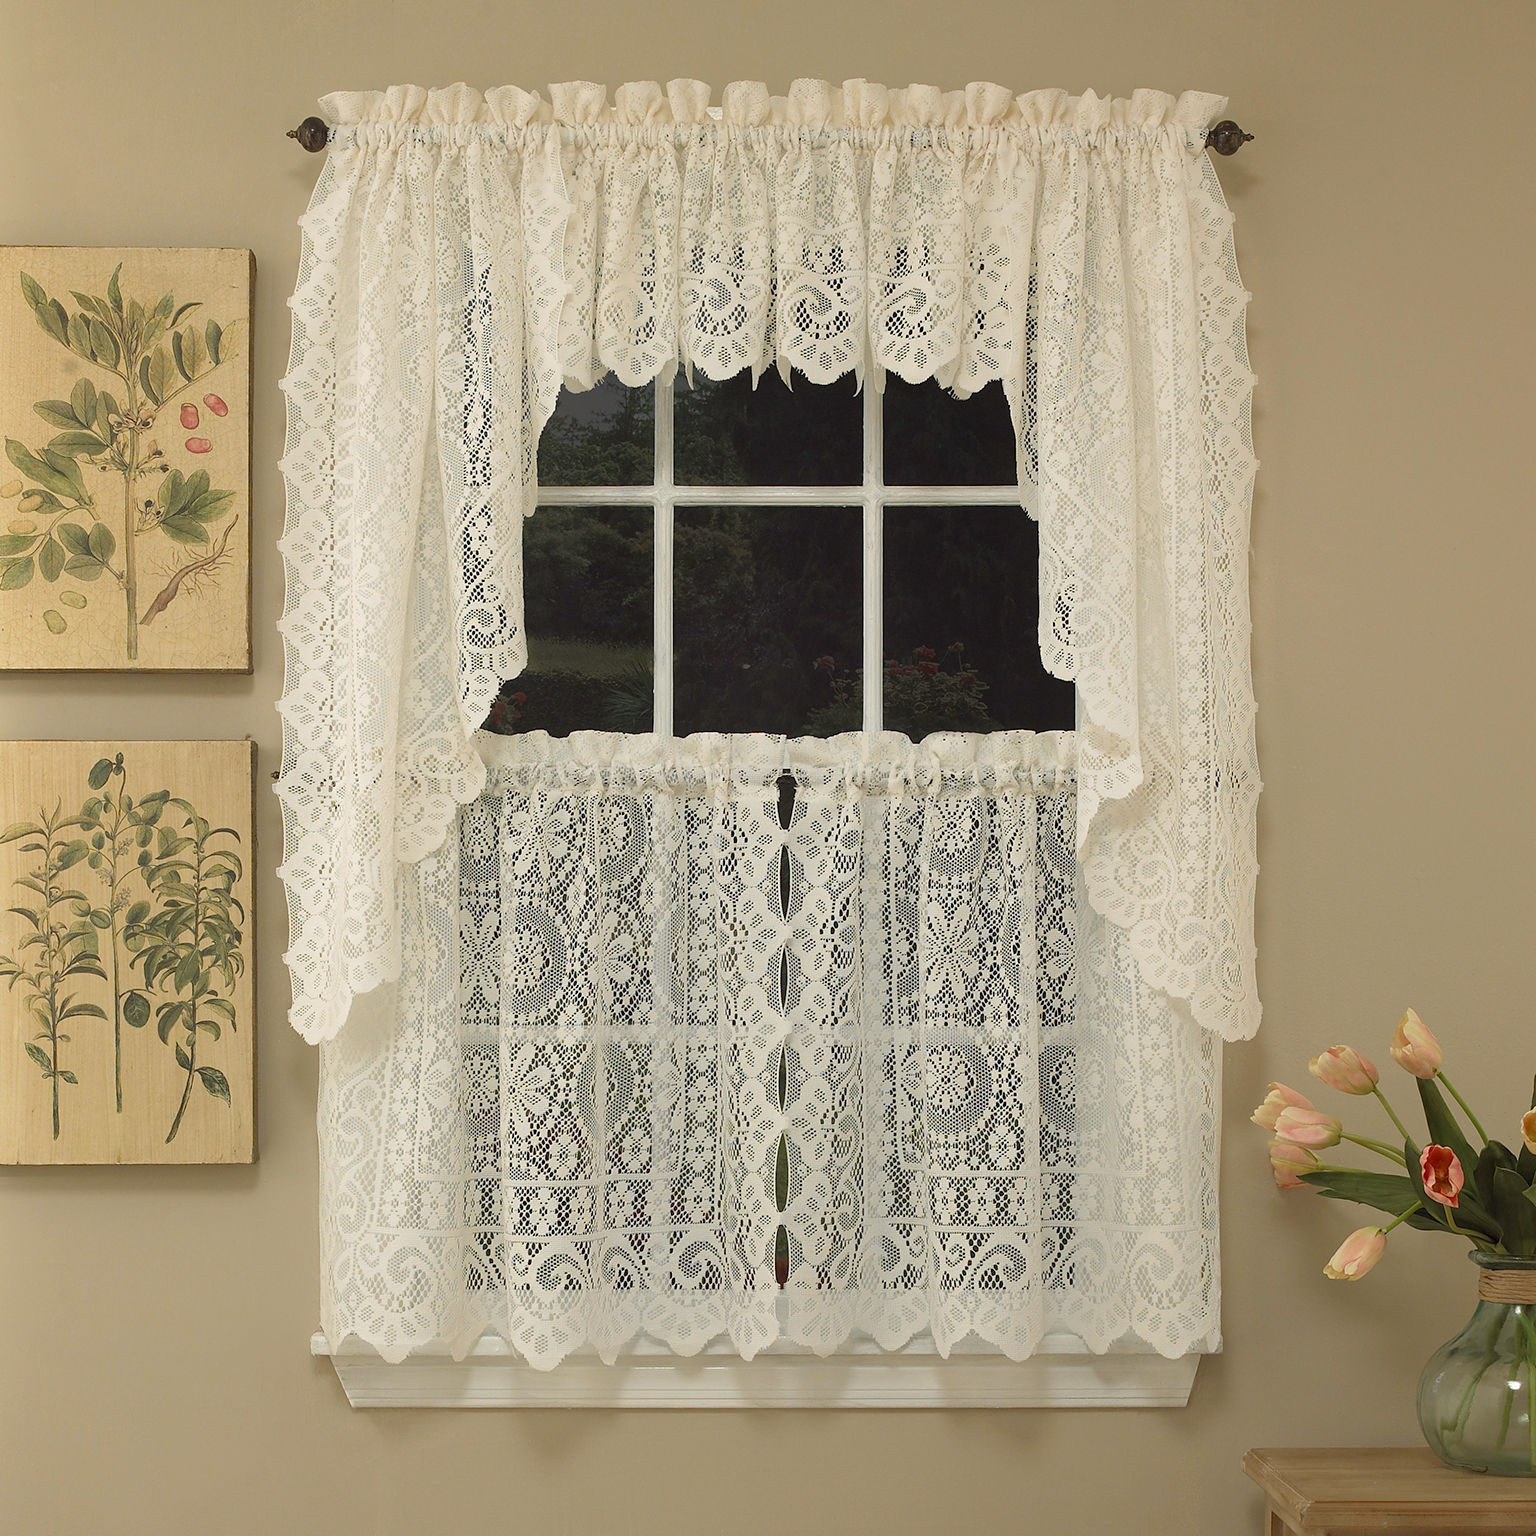 Fashionable Hopewell Heavy Cream Lace Kitchen Curtain Choice Of Tier Valance Or Swag Pertaining To Luxurious Old World Style Lace Window Curtain Panels (Gallery 18 of 20)